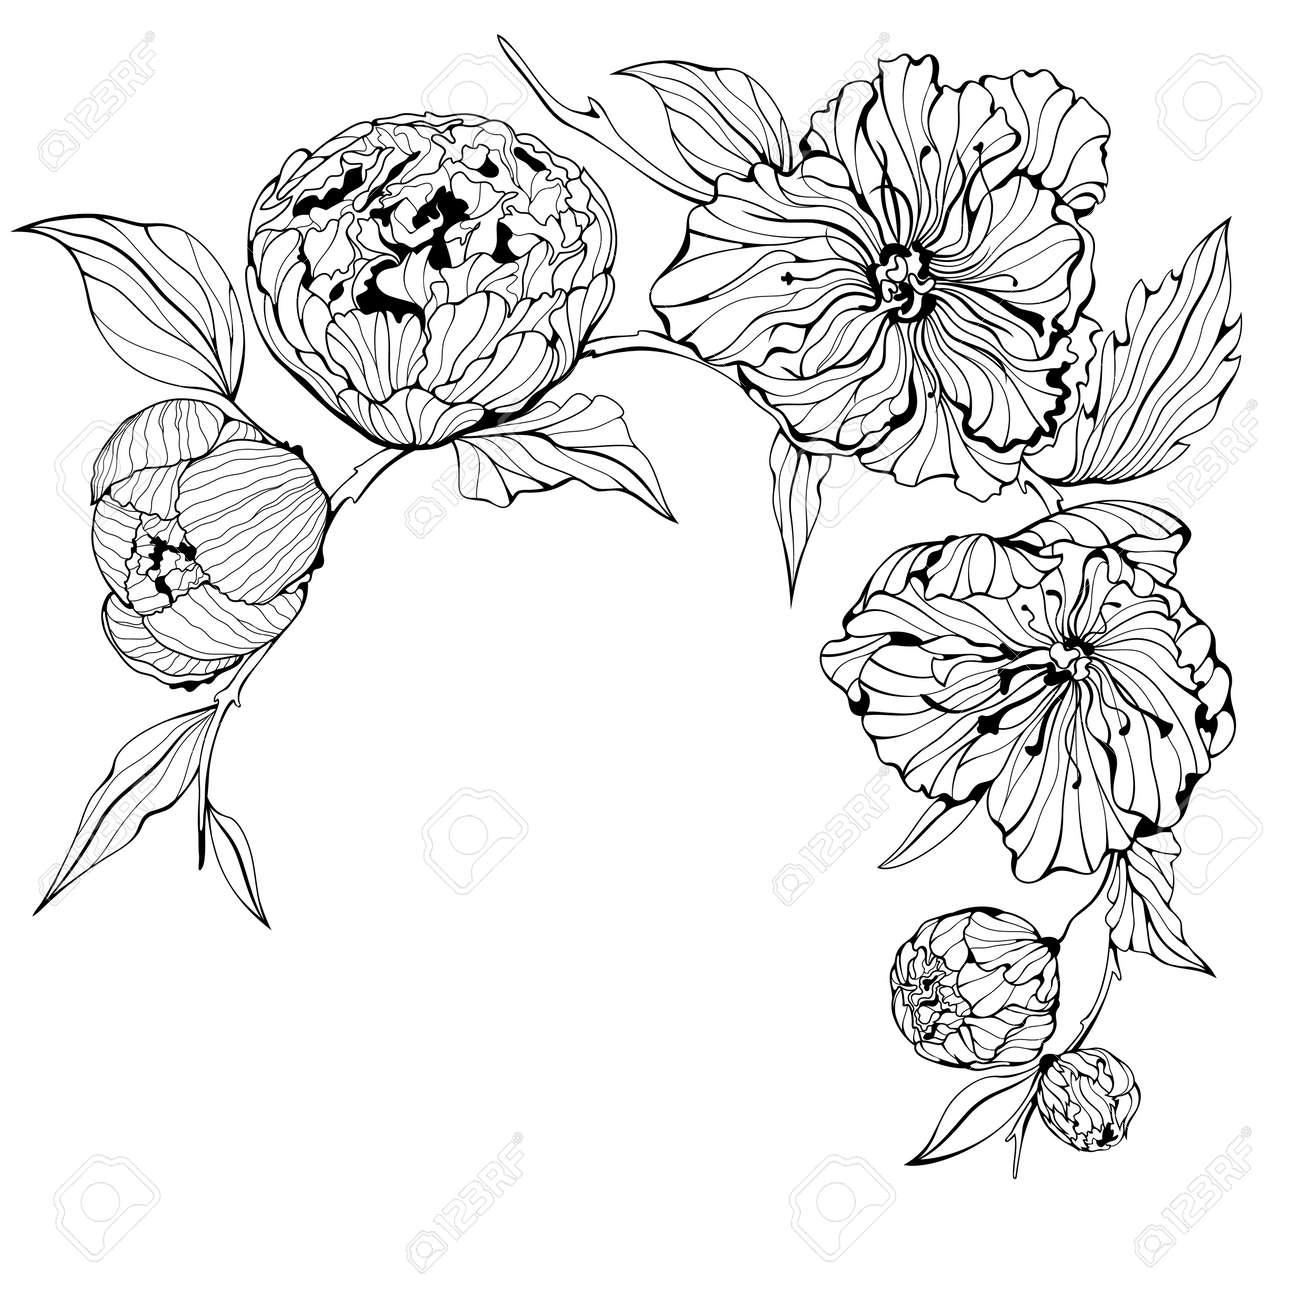 Peony flower isolated on white stock vector 368014568 shutterstock - 17 Best Ideas About Peonies Tattoo On Pinterest Ink Peony